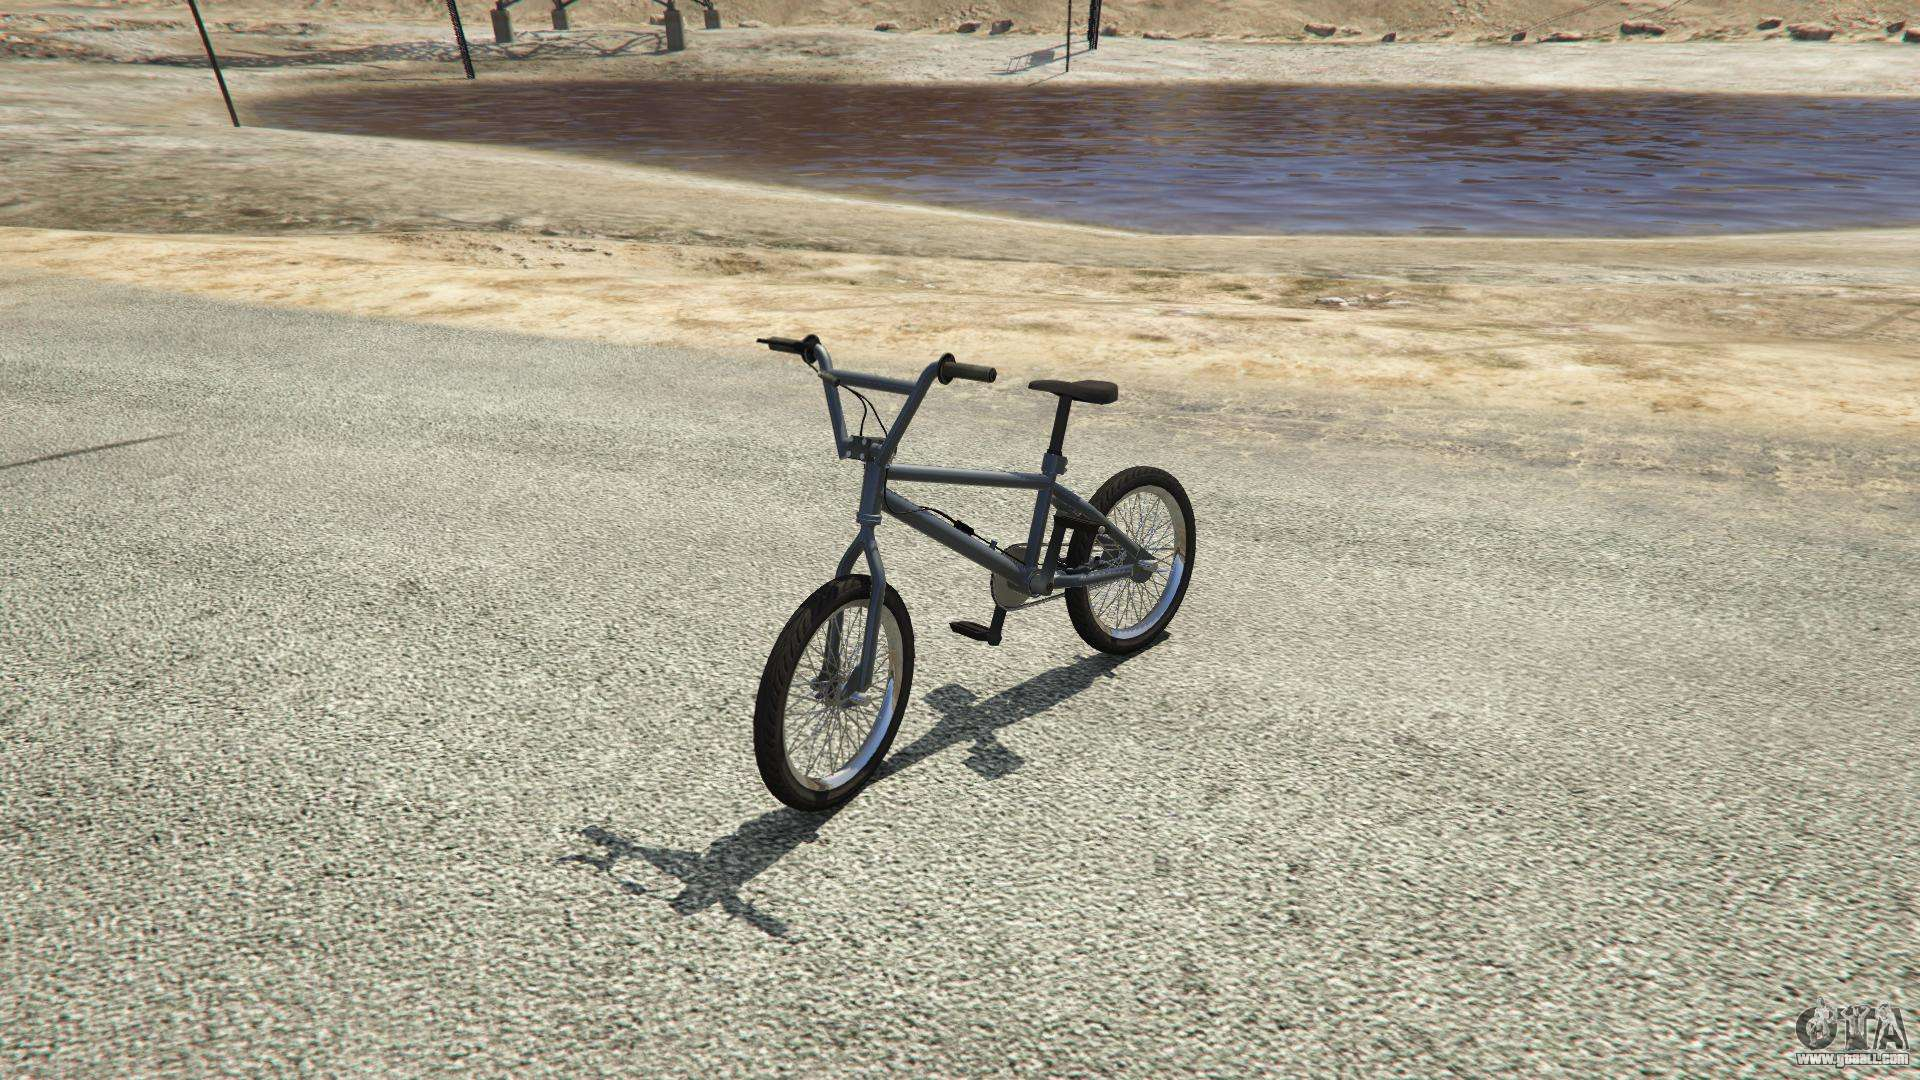 BMX GTA 5 - screenshots, specifications and descriptions ...